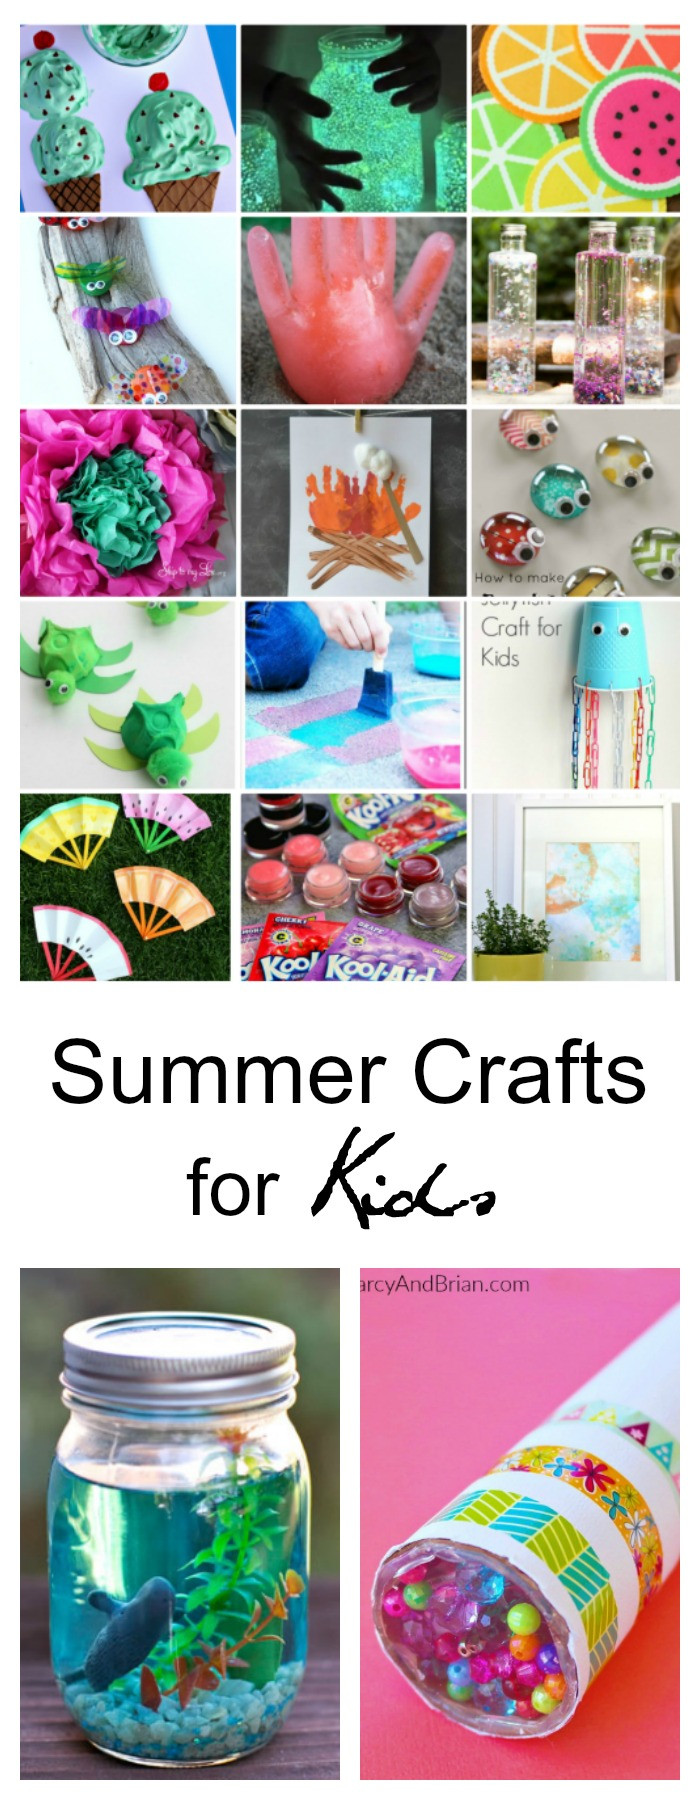 Best ideas about Easy Kids Crafts Ideas . Save or Pin 40 Creative Summer Crafts for Kids That Are Really Fun Now.